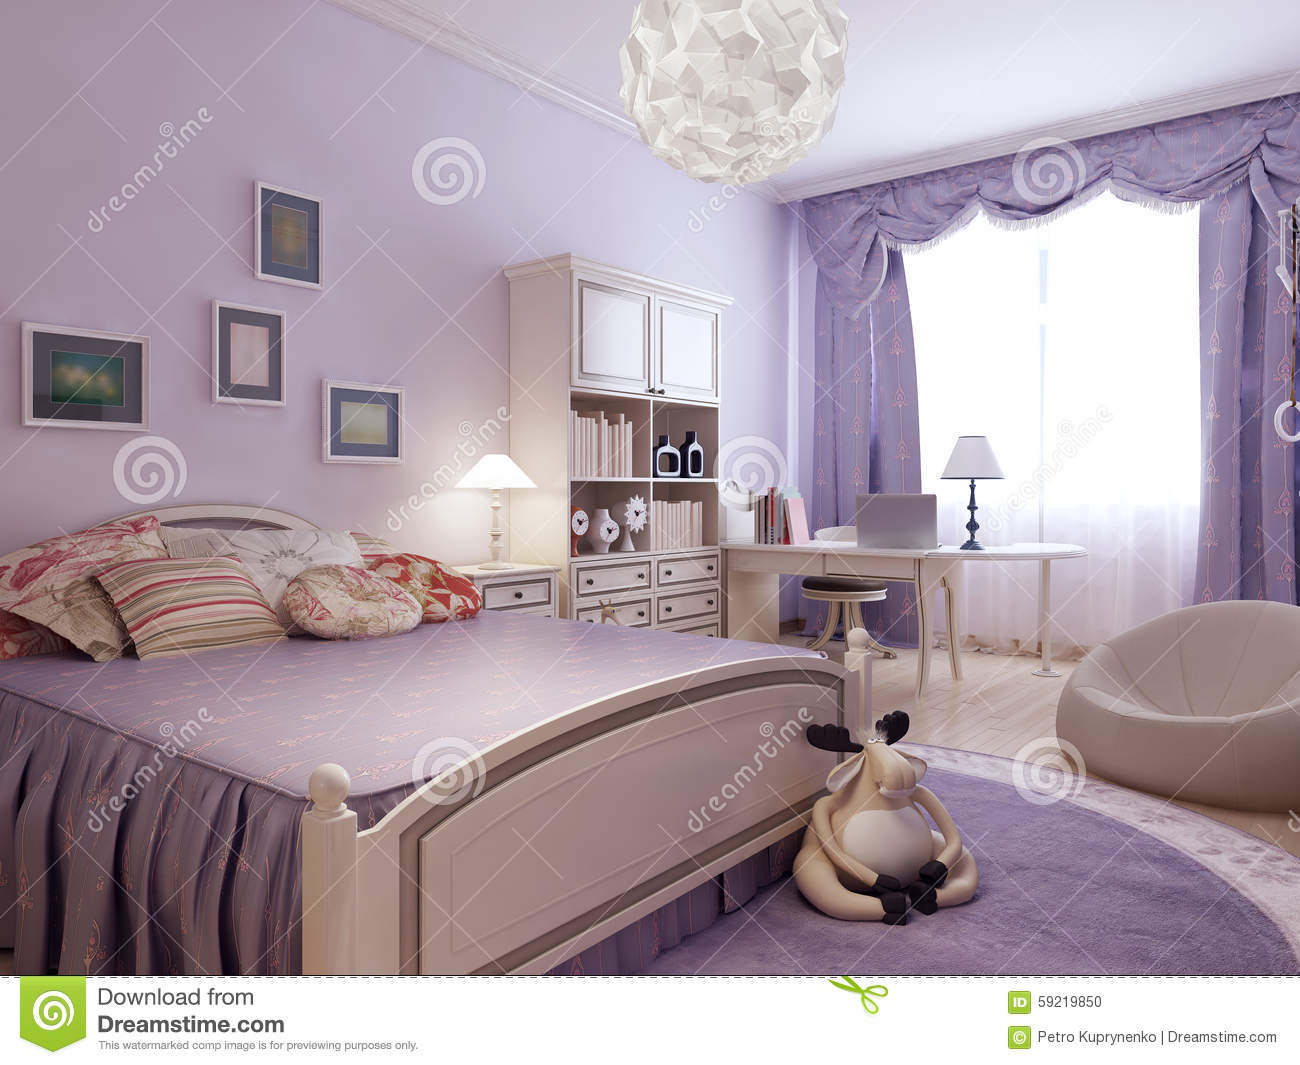 chambre coucher de confort pour la fille d 39 adolescent illustration stock image 59219850. Black Bedroom Furniture Sets. Home Design Ideas